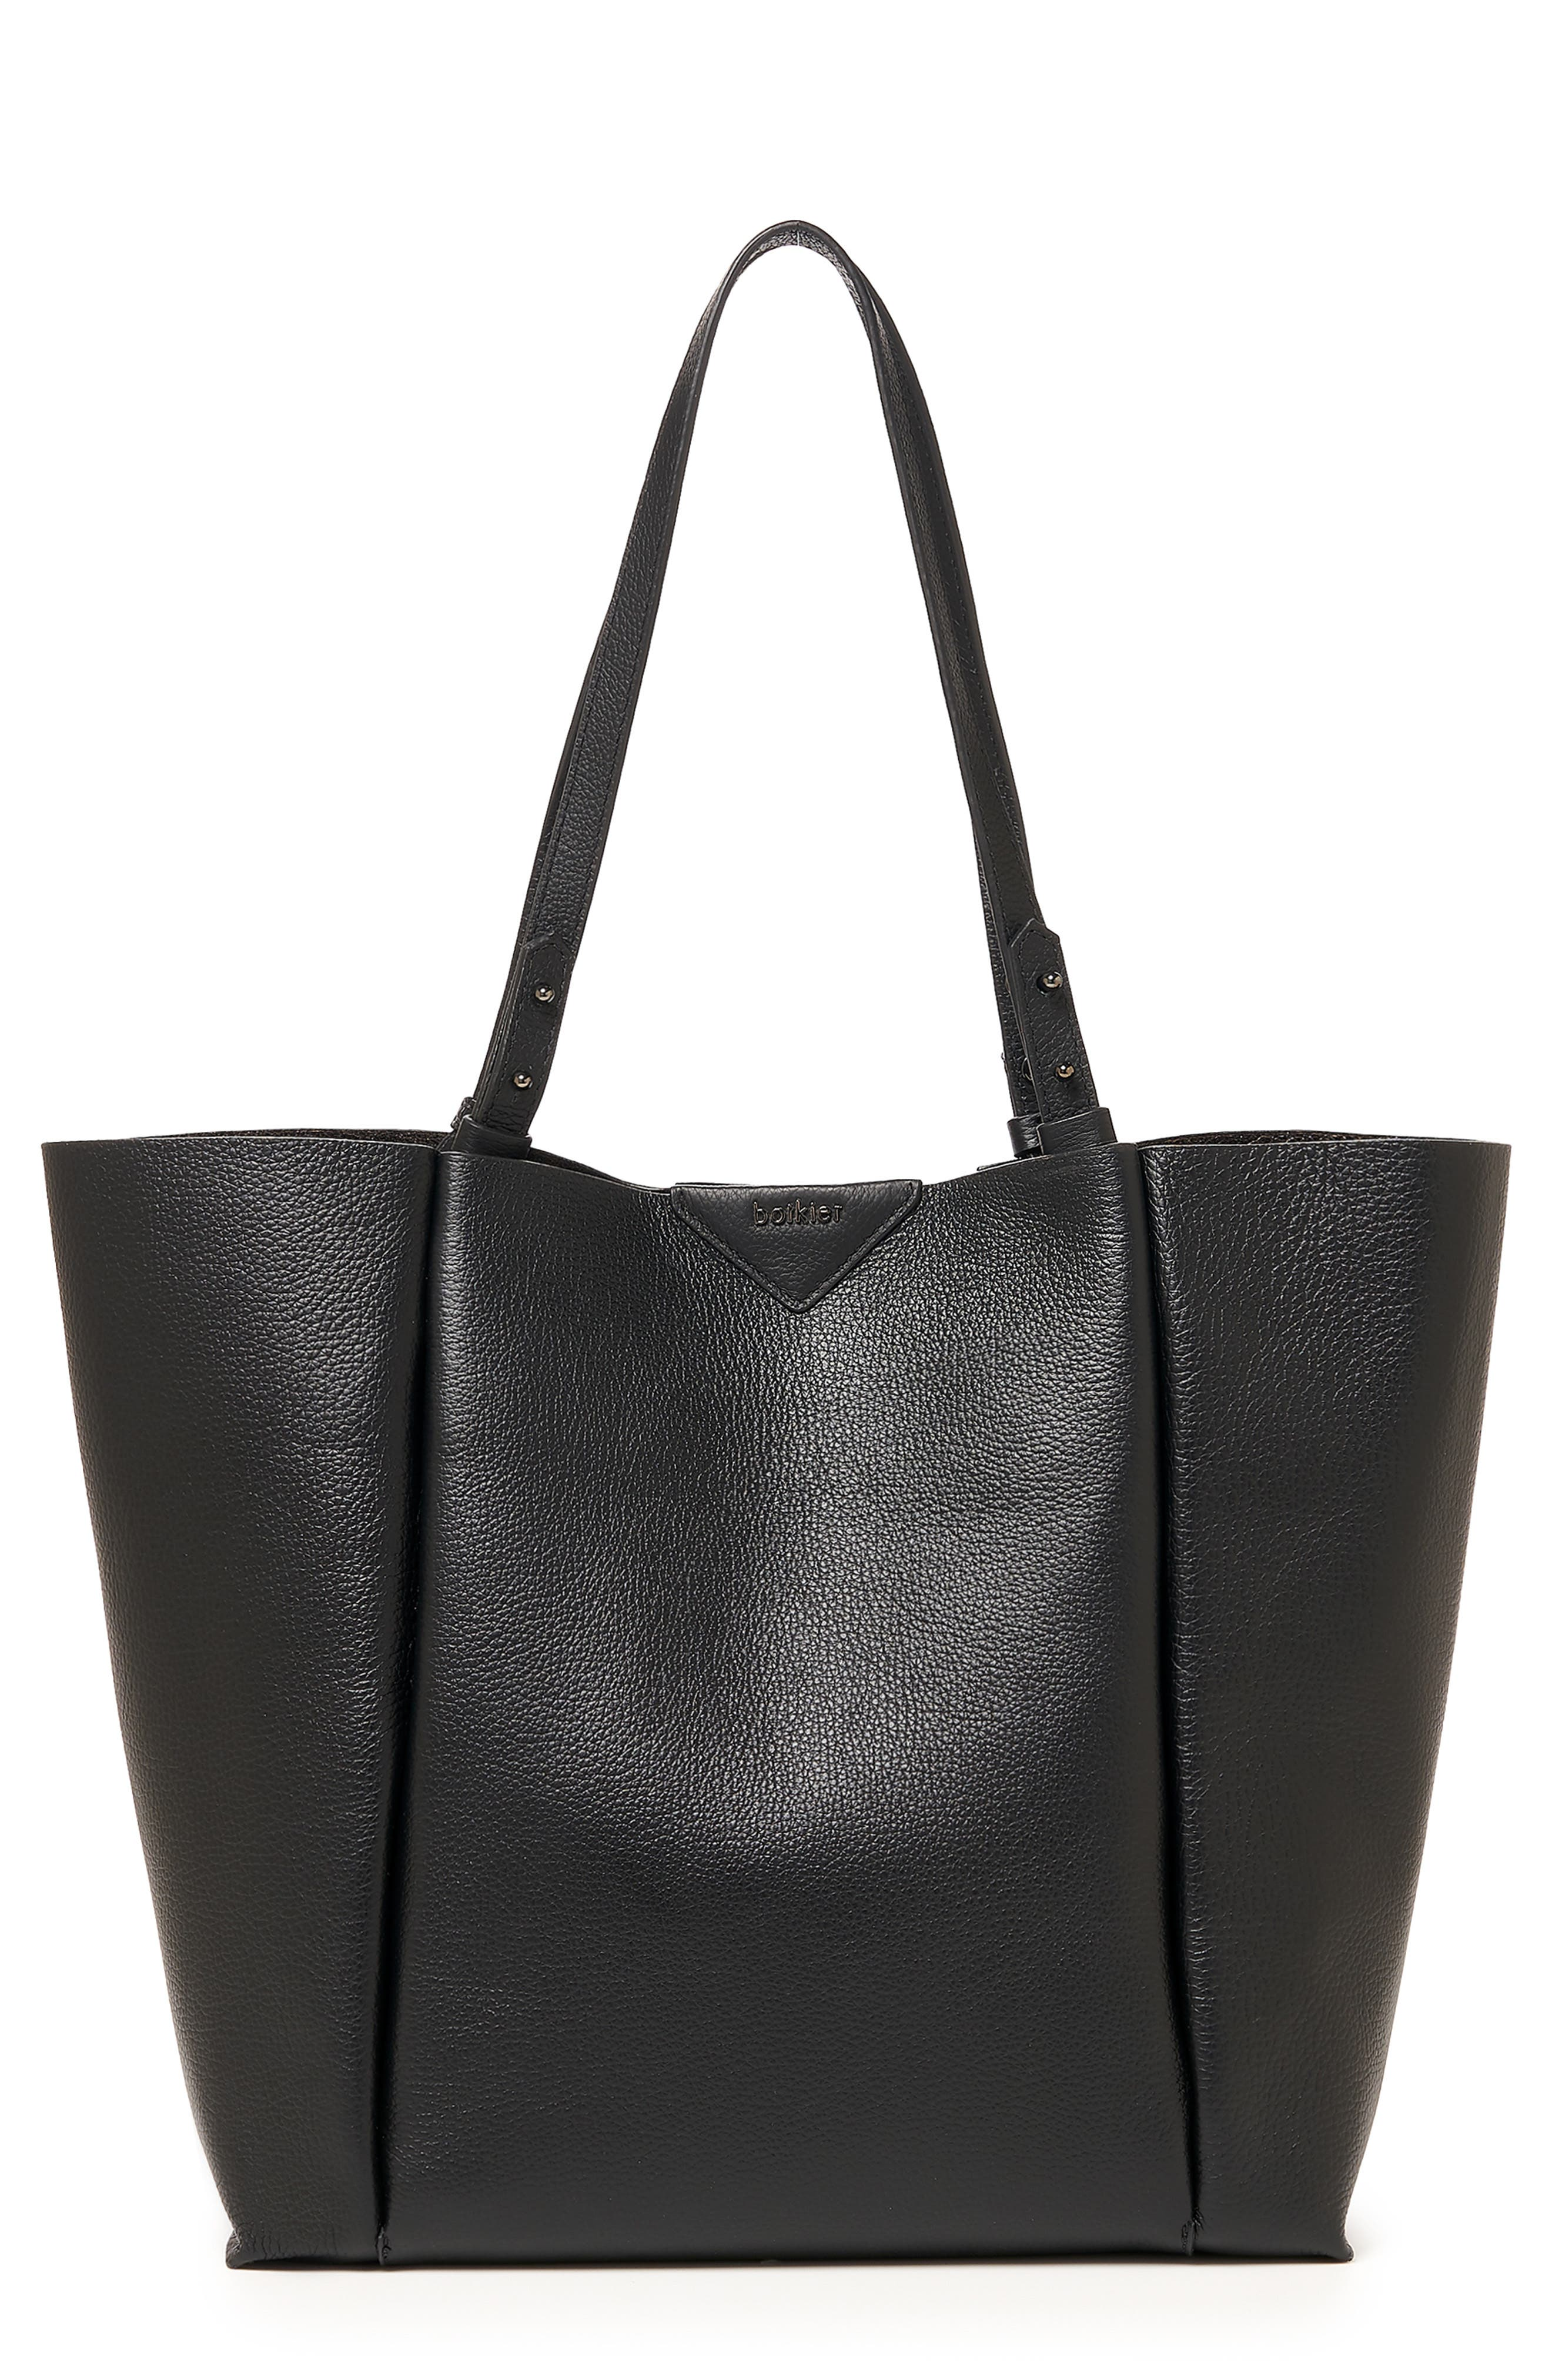 Allen Pebbled Leather Tote